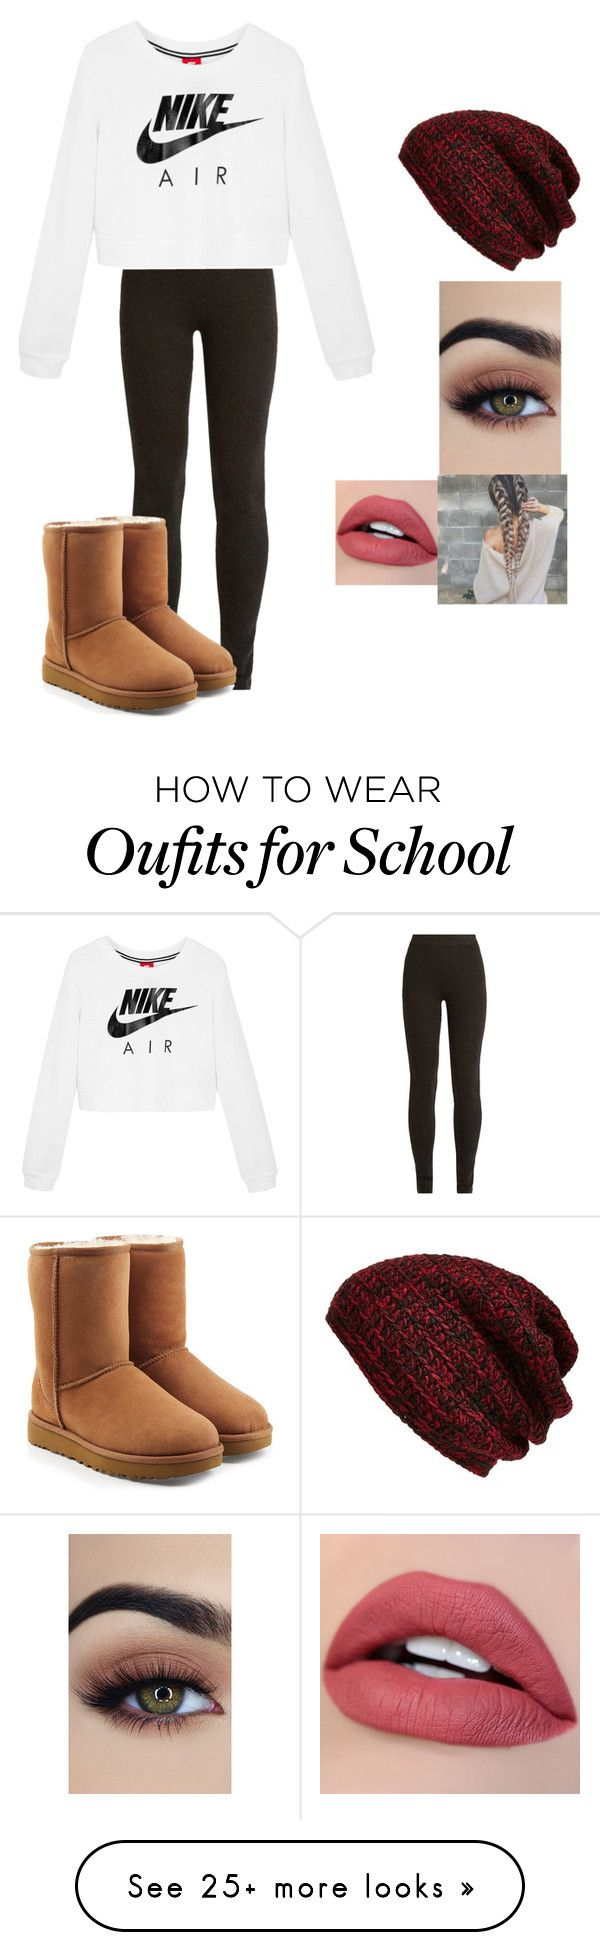 """""""School sucks."""" by km213009 on Polyvore featuring Ryan Roche, NIKE, UGG and King & Fifth Supply Co."""